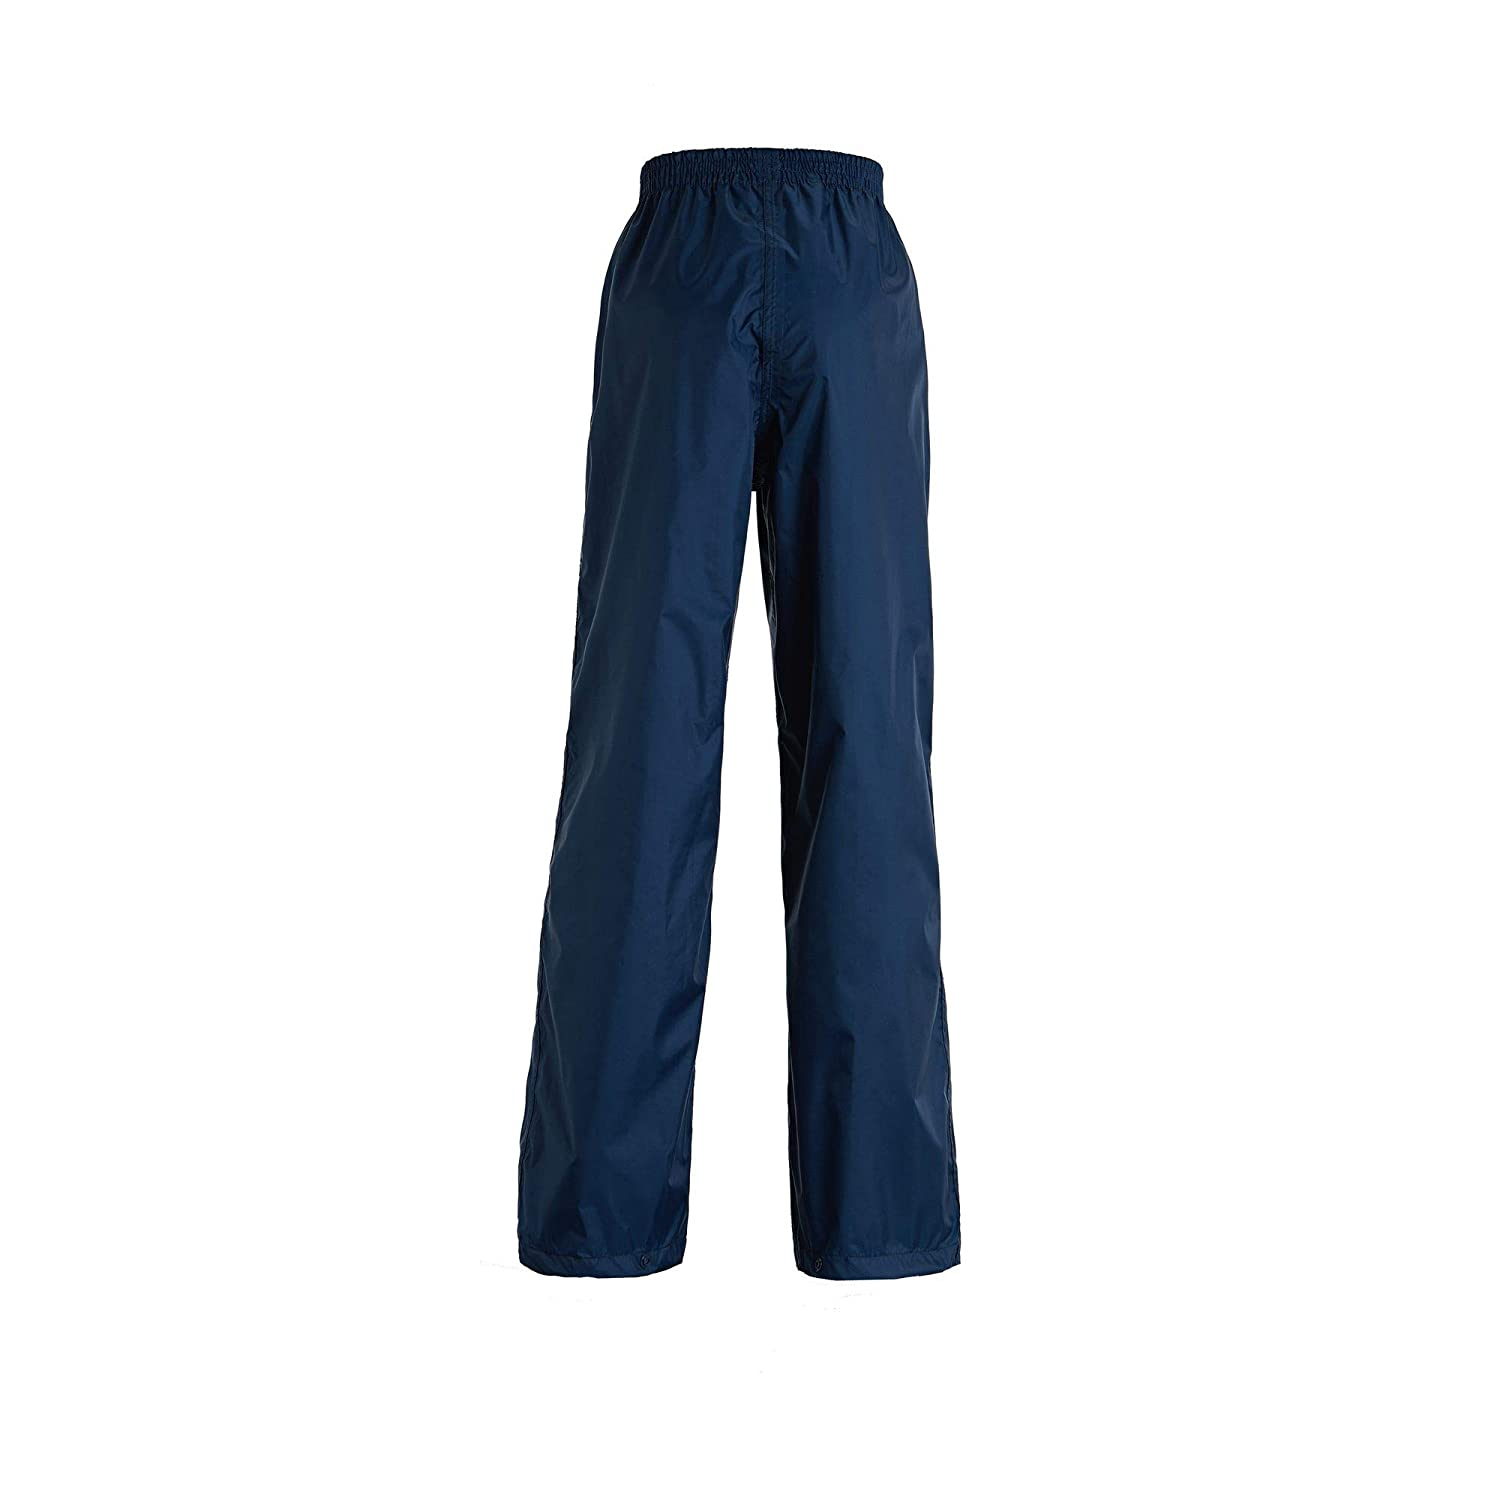 Regatta Childrens Pack It Waterproof and Breathable Trousers